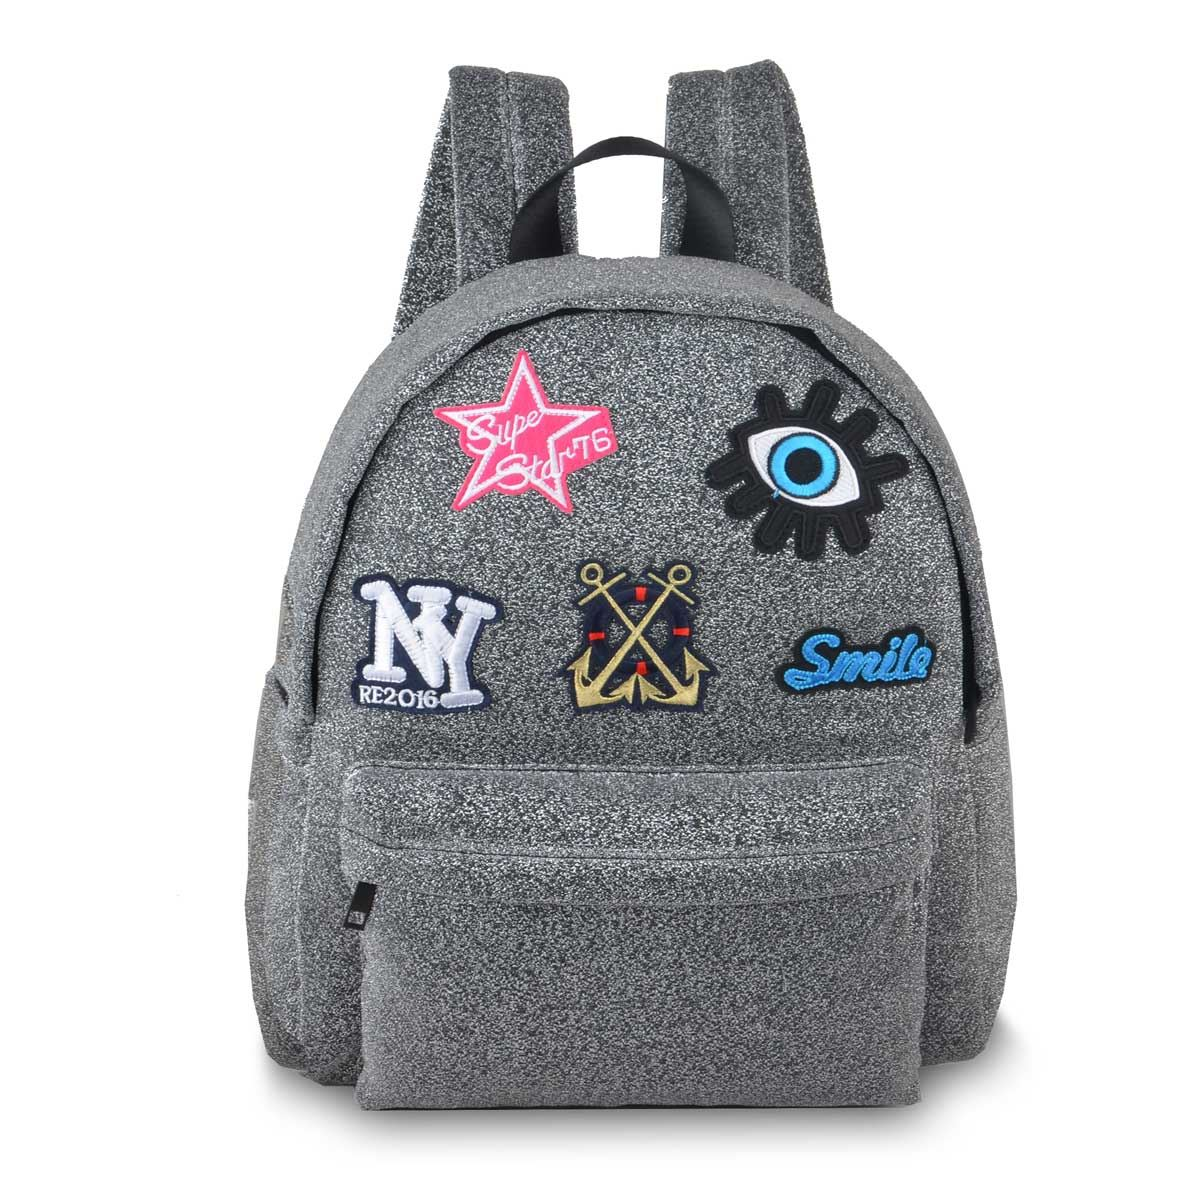 Back Pack Super Star Gris Mb8005 Nuovo